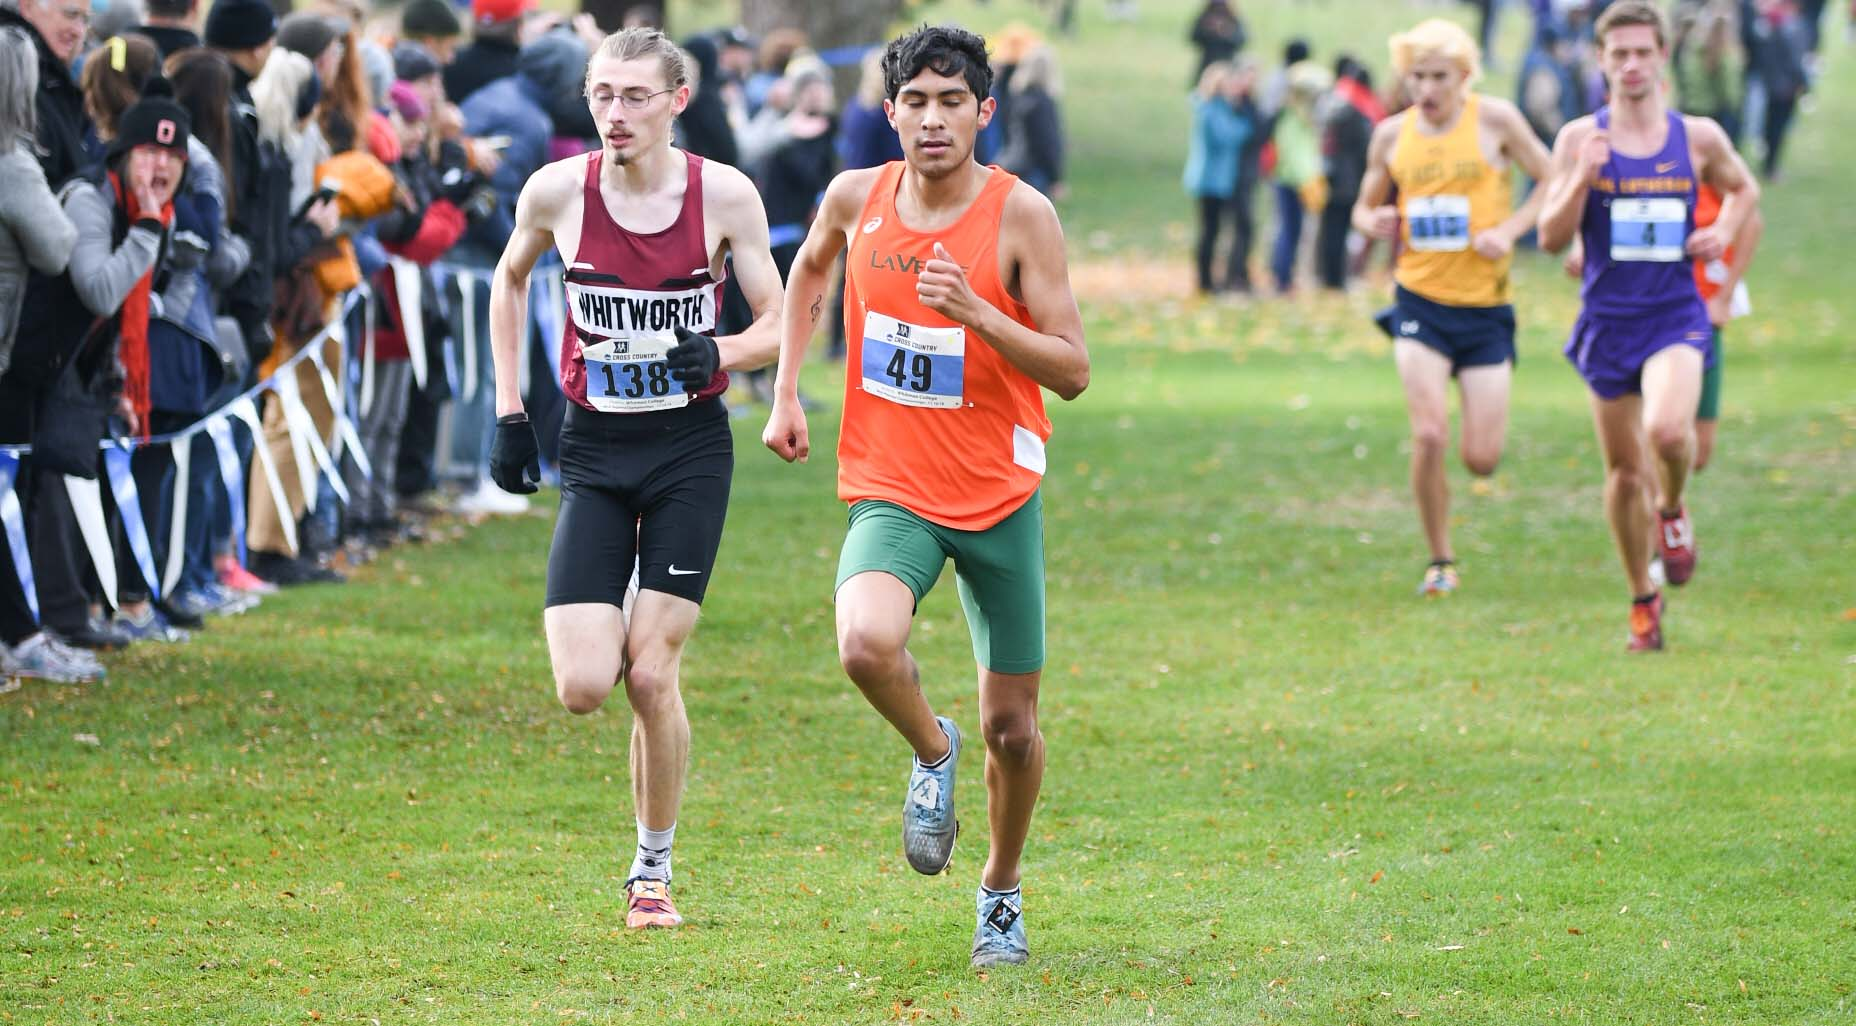 MXC has strong finish at NCAA West Regionals